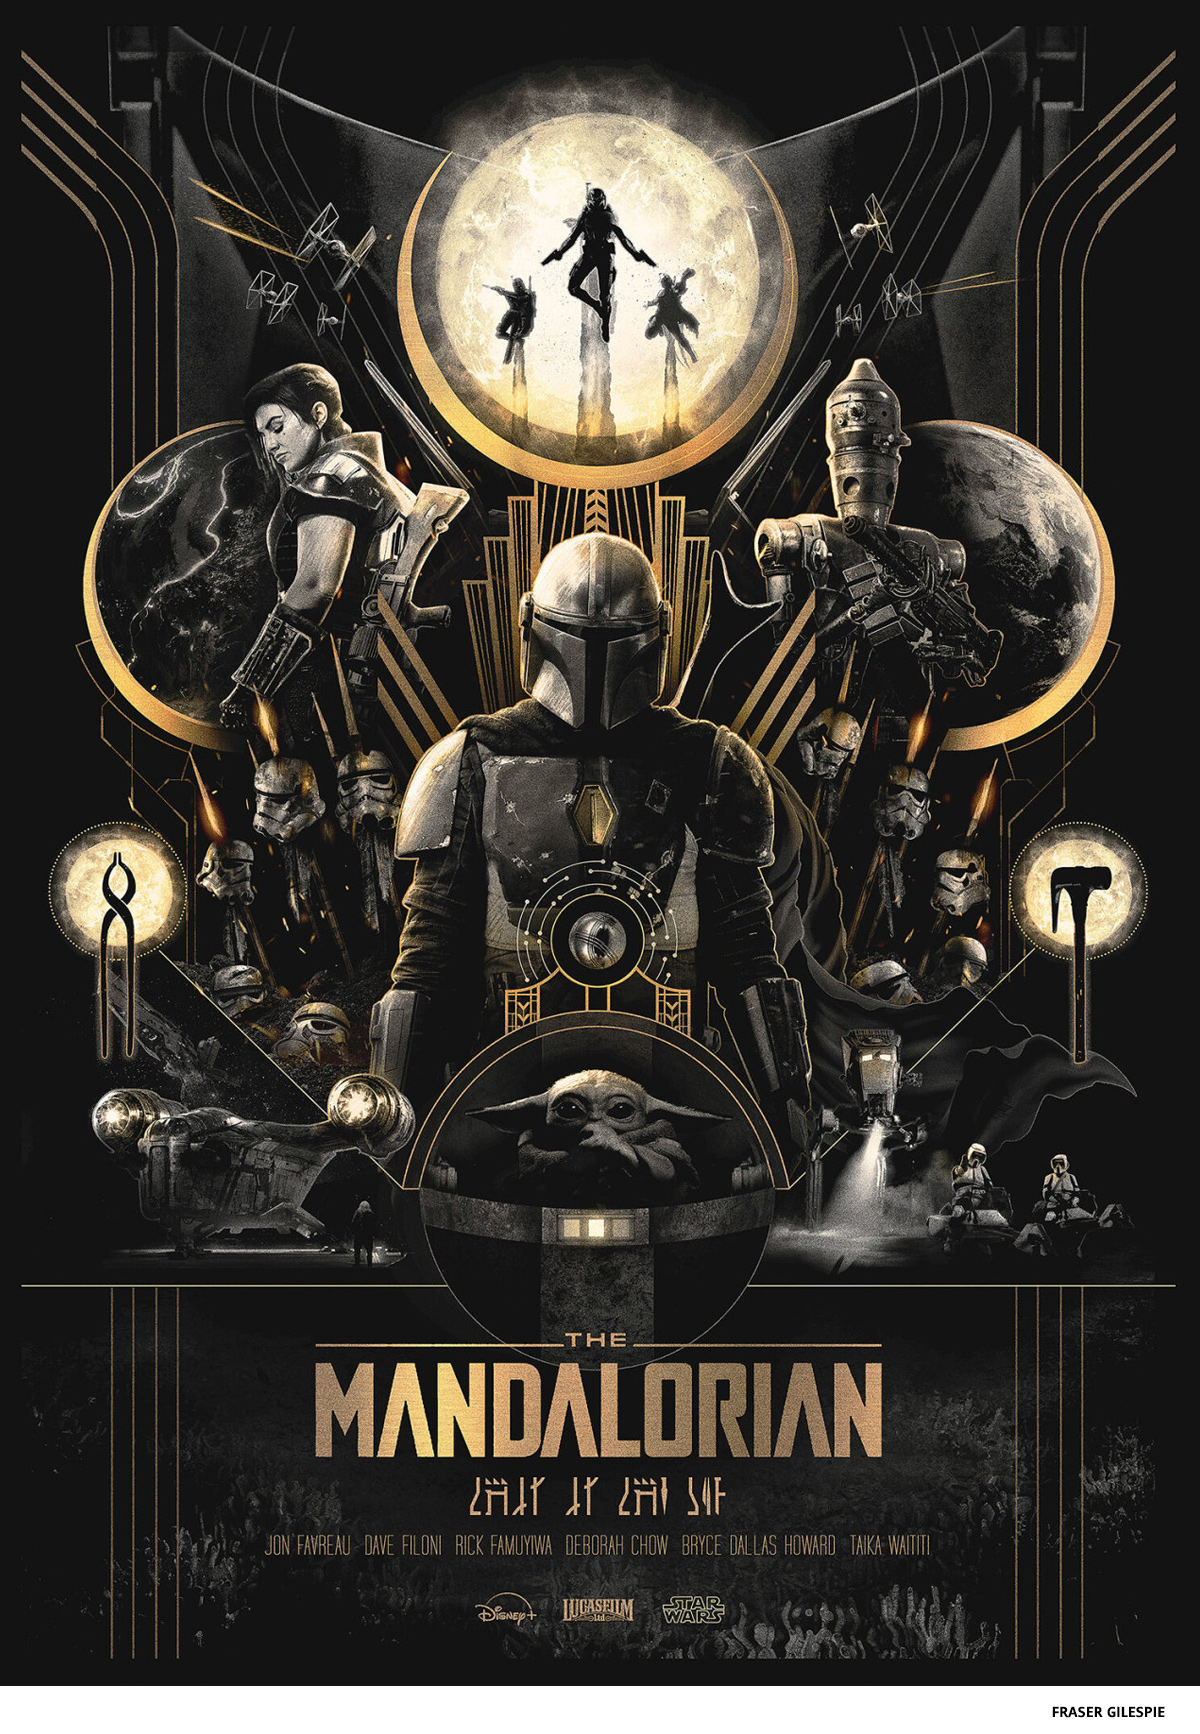 The Mandalorian by Fraser Gilepsie - science-fiction poster